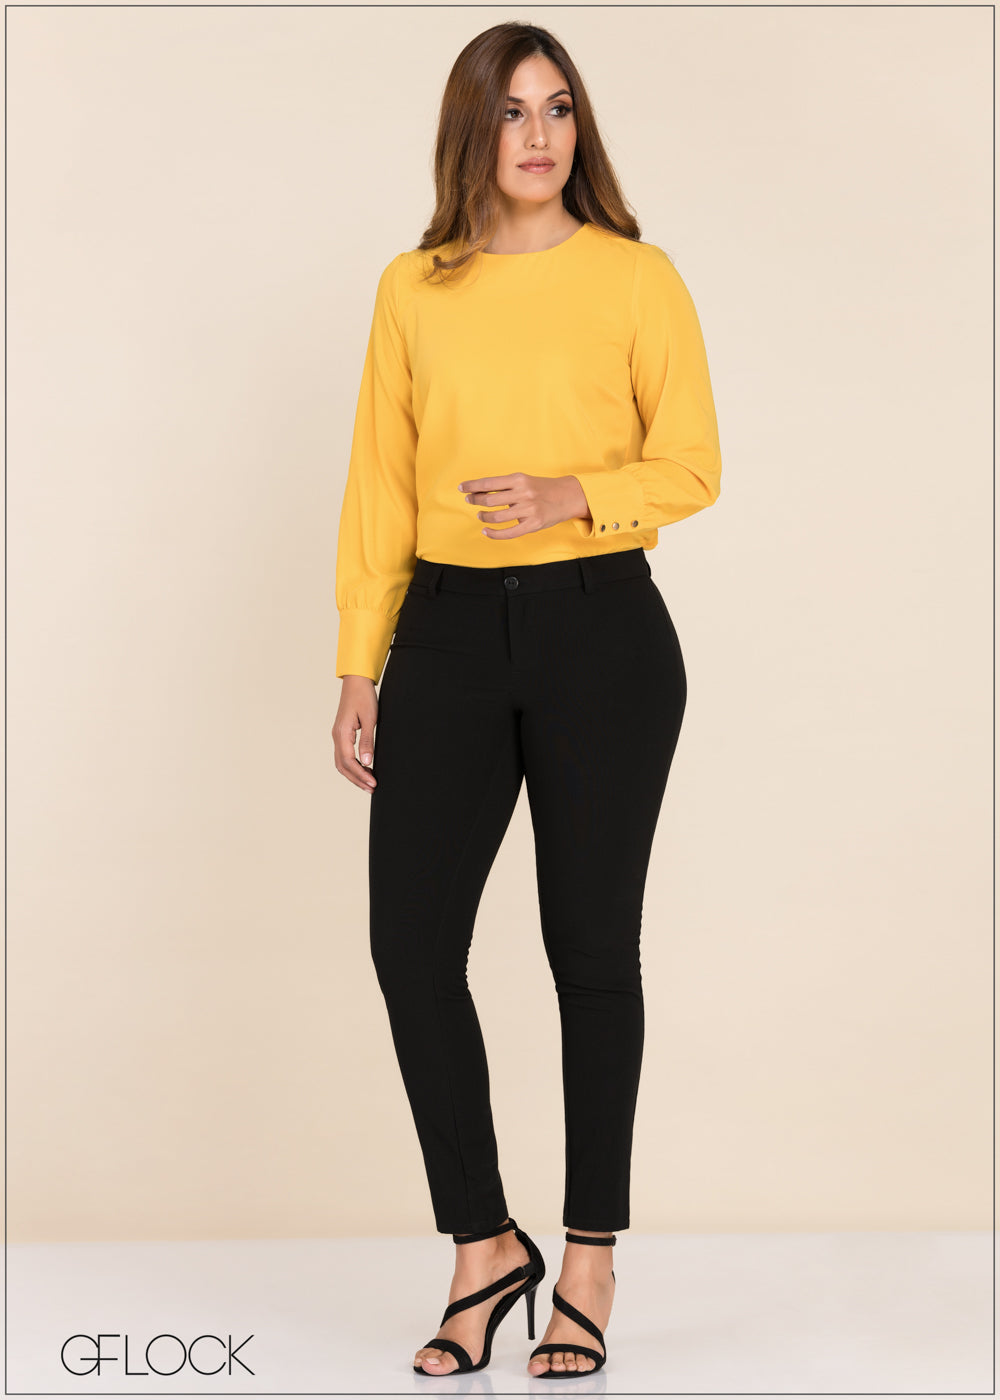 Button Detailed Long Sleeve Top - GFLOCK.LK